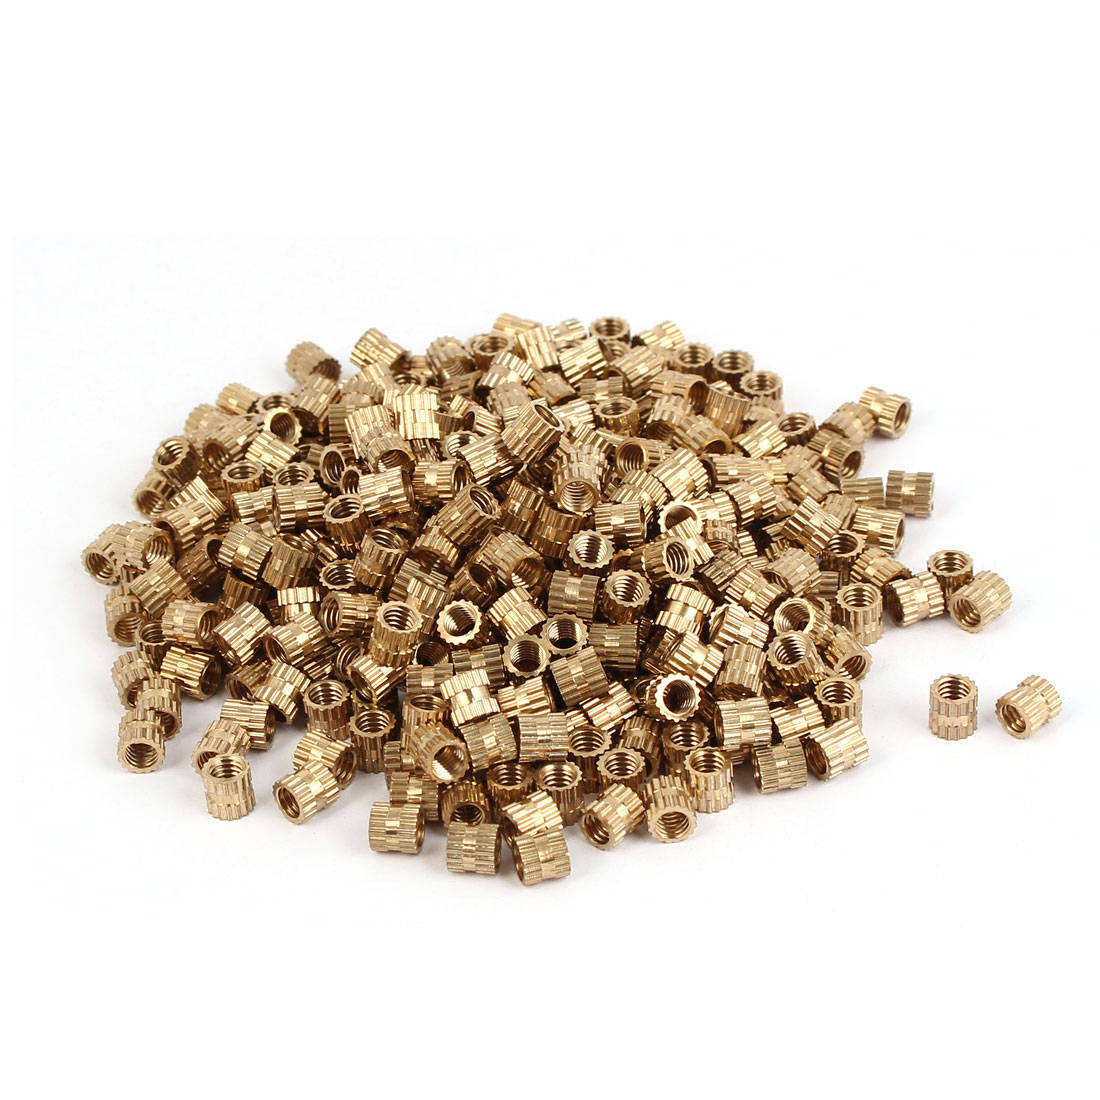 M4 x 5mm 0.7mm Pitch Brass Knurled Threaded Insert Embedded Nuts 500PCS